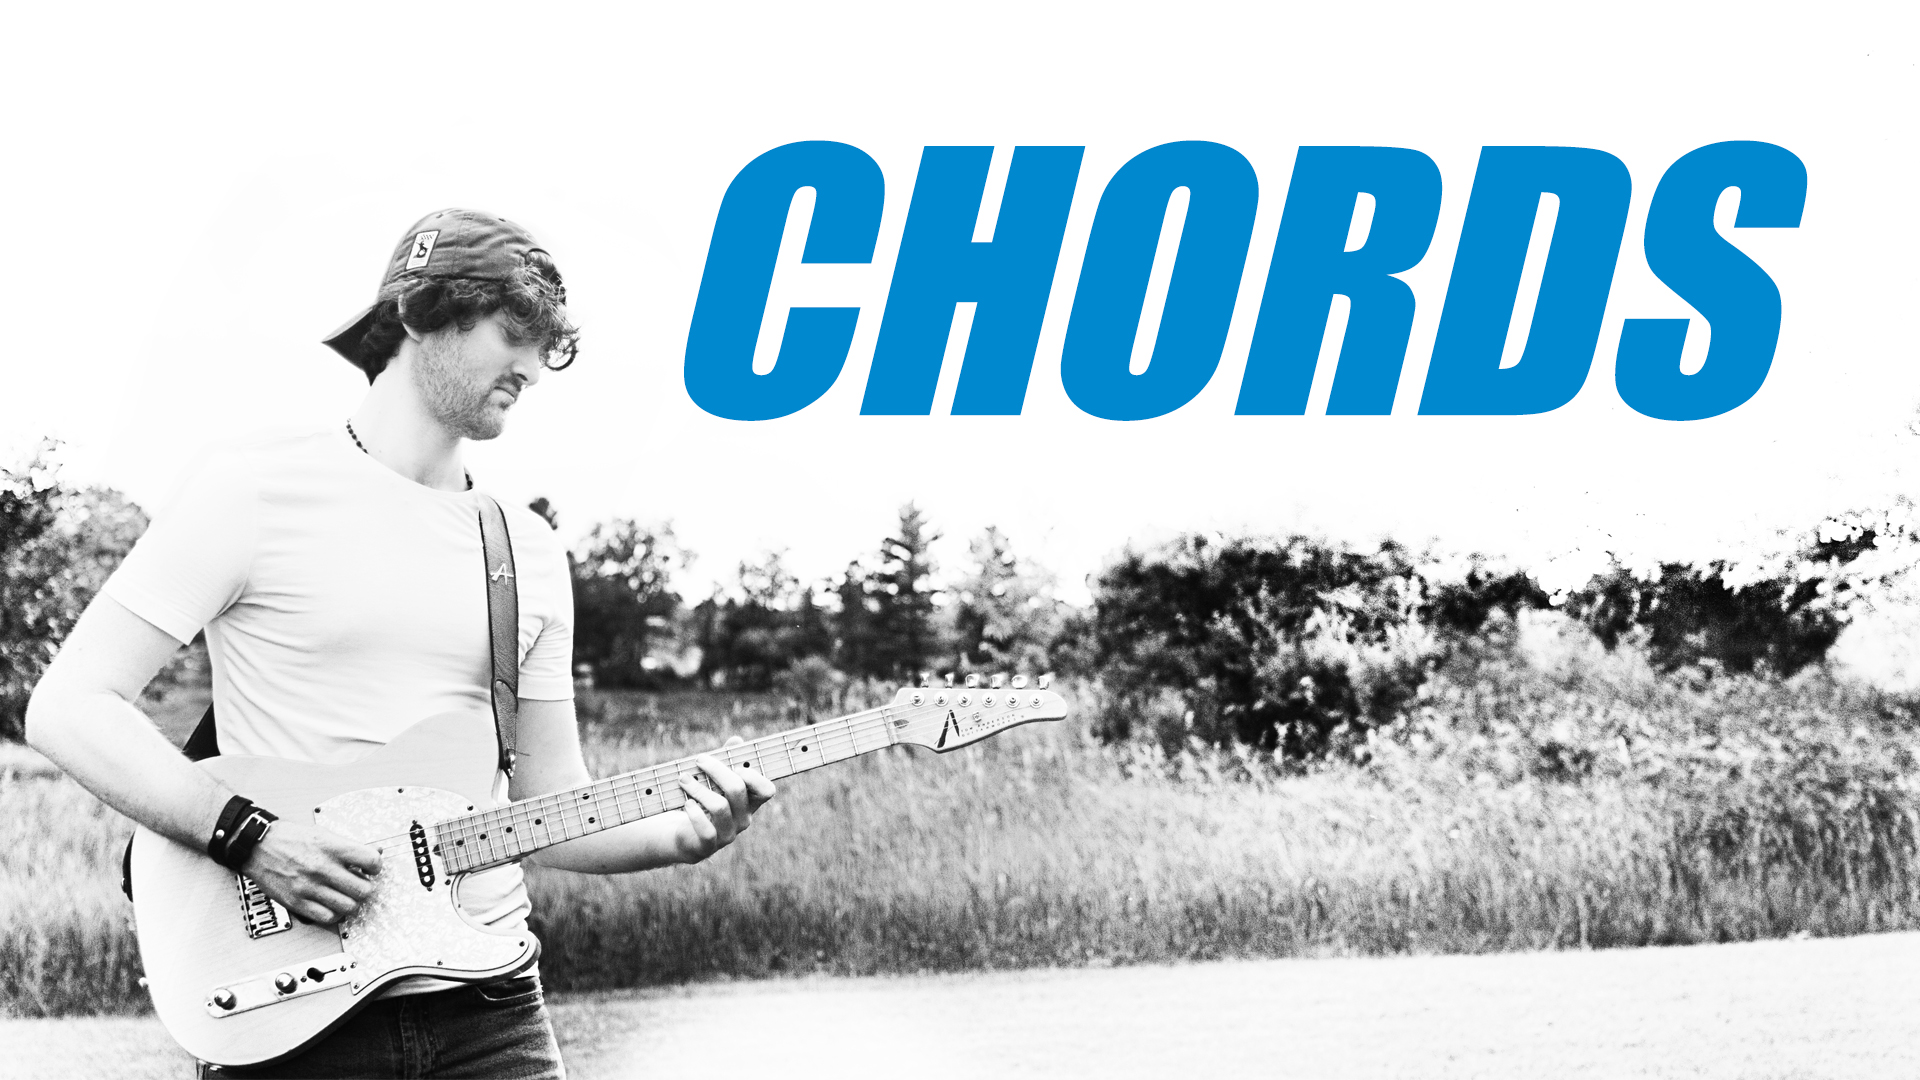 Chords course cover